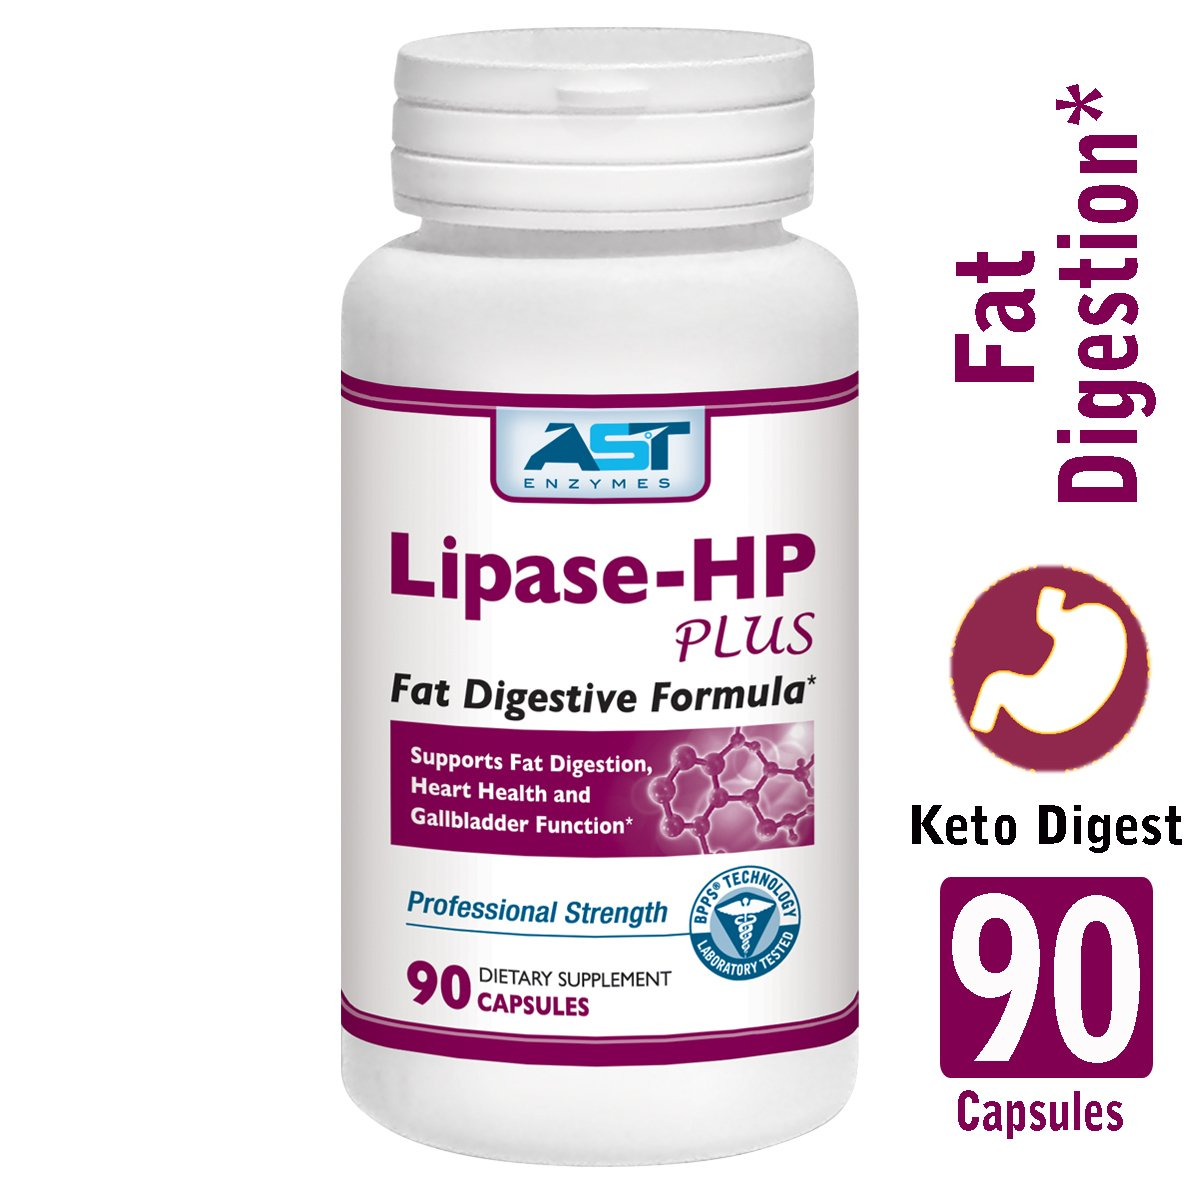 Lipase-HP Plus - 90 Vegetarian Capsules - Fat Digestion Support - Keto Diet Digestive Enzyme Formula - AST Enzymes by AST Enzymes